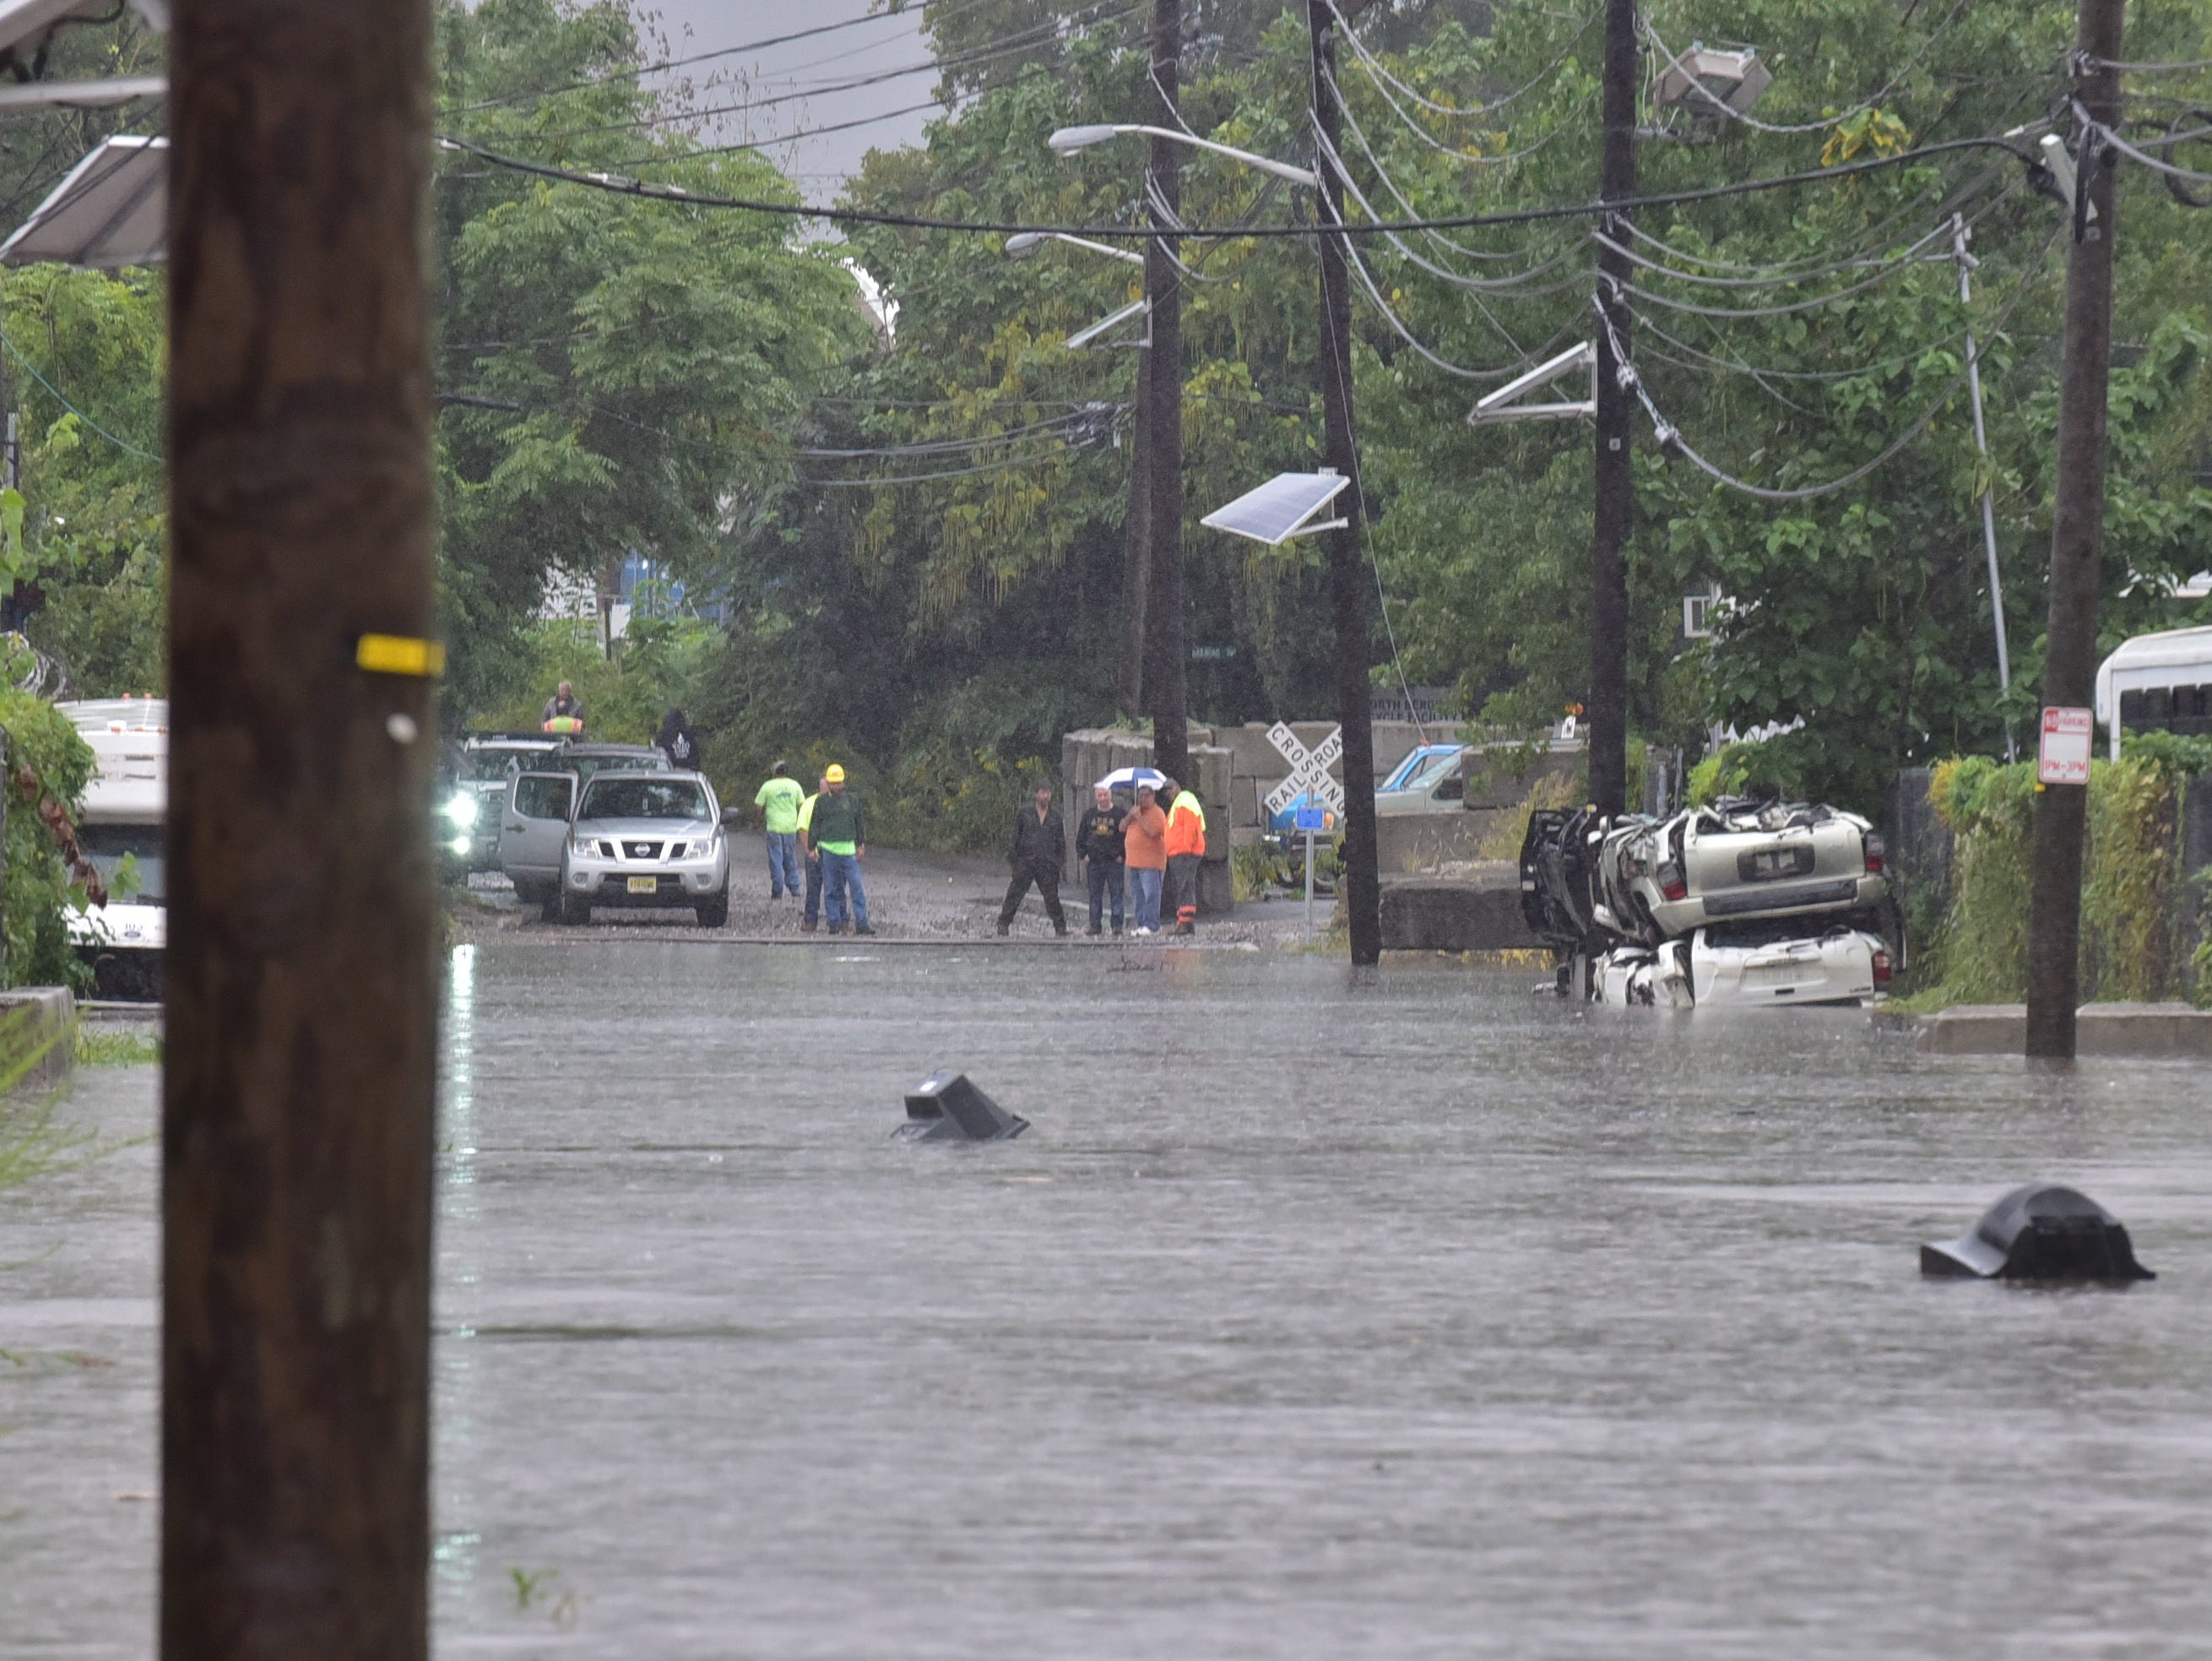 Heavy rain flooded Fairview Avenue at an Industrial Park in Fairview, stranding workers with no way out.